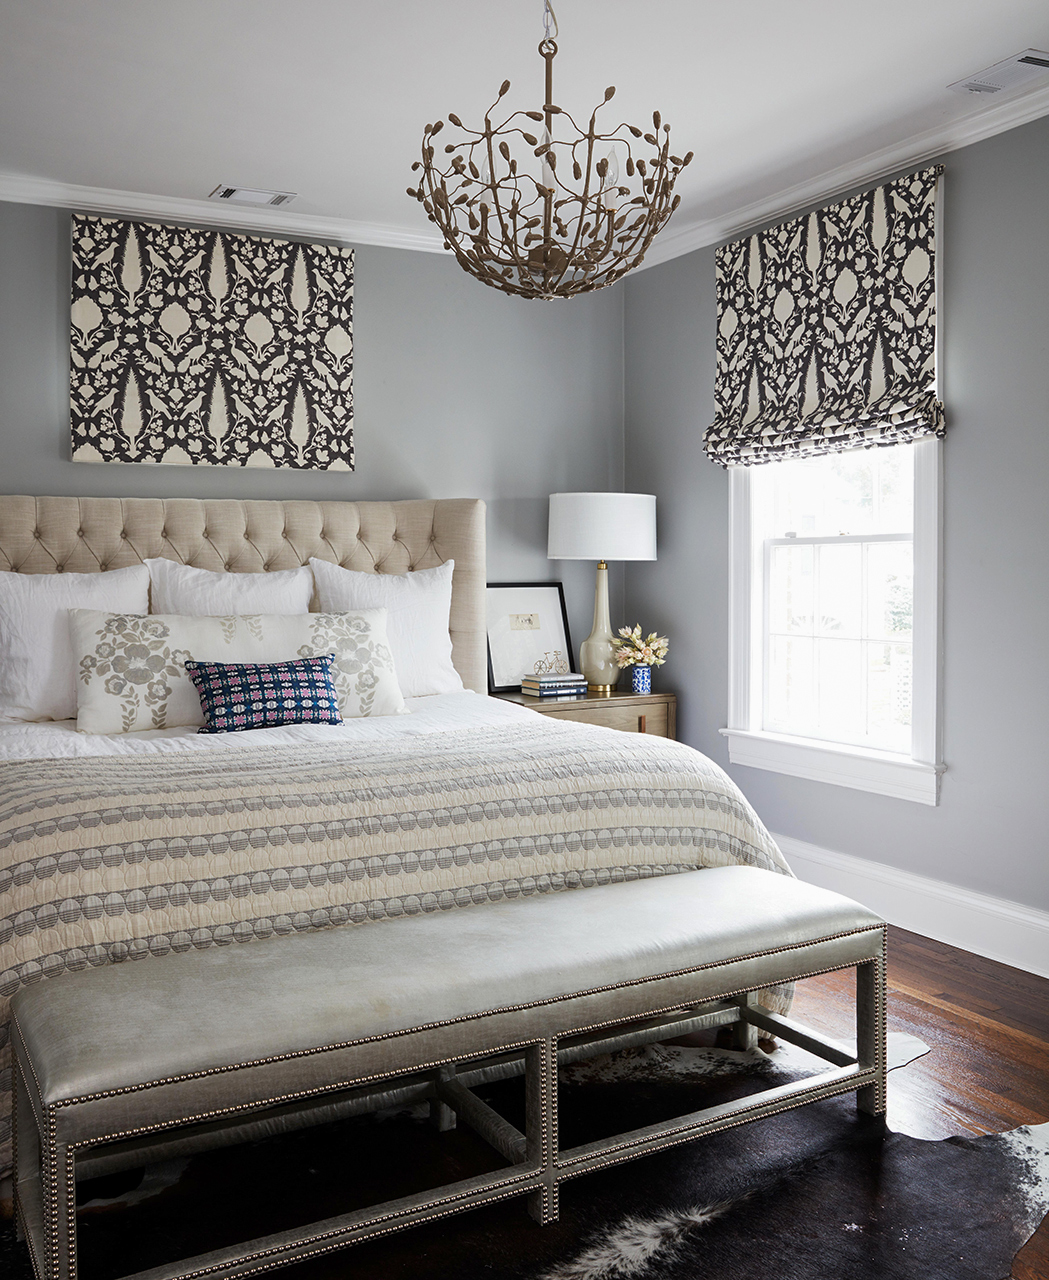 Standout Bedroom Paint Color Ideas for a Space That's